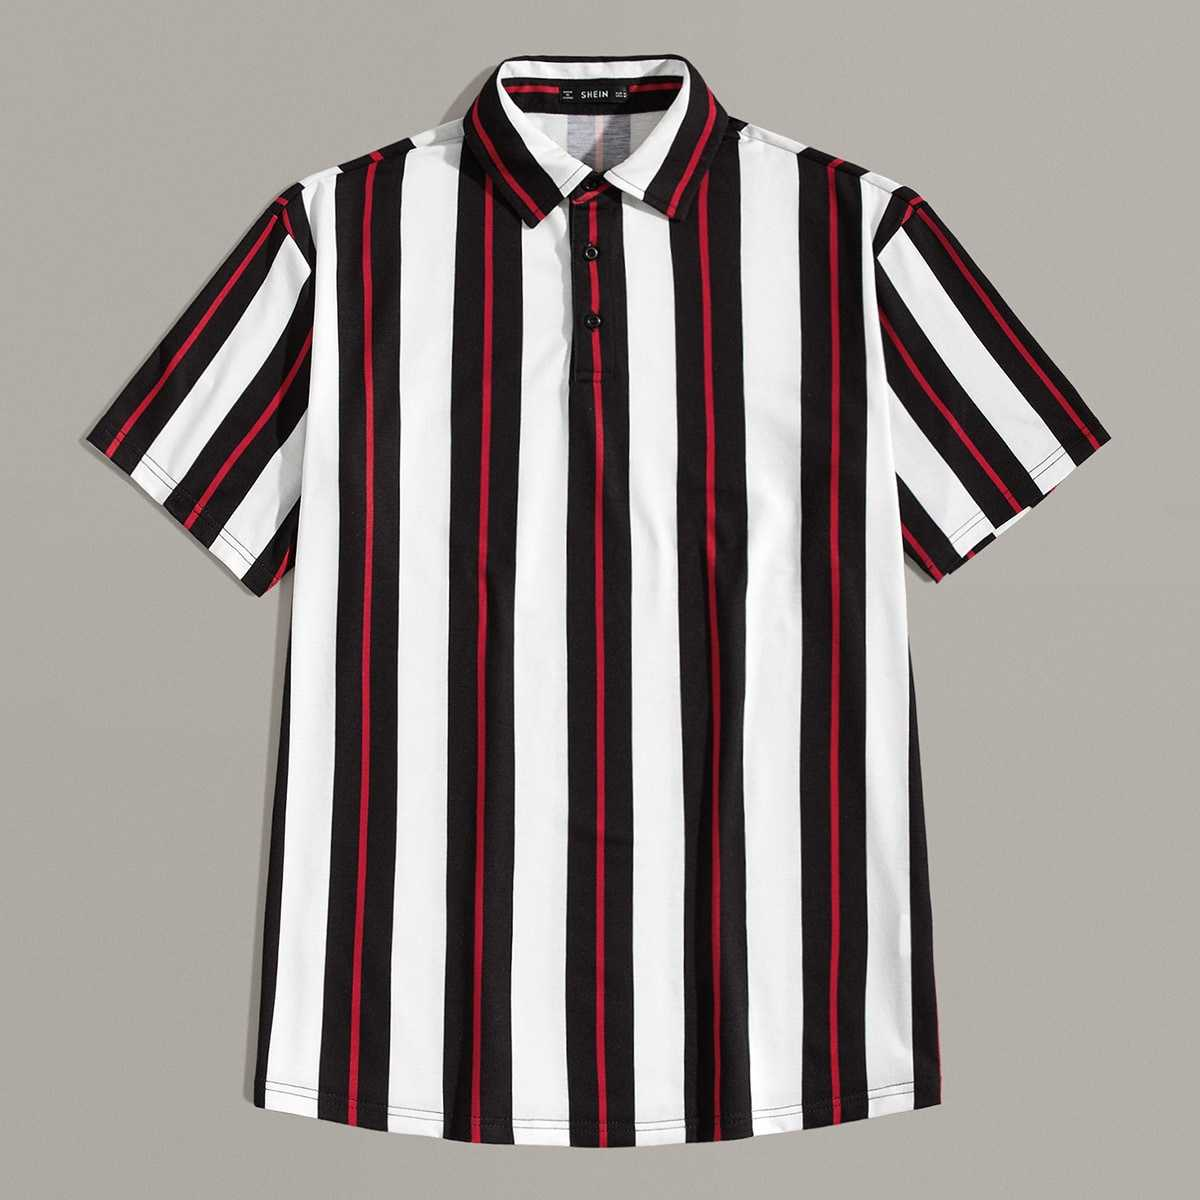 Guys Button Front Striped Polo Shirts in Multicolor by ROMWE on GOOFASH